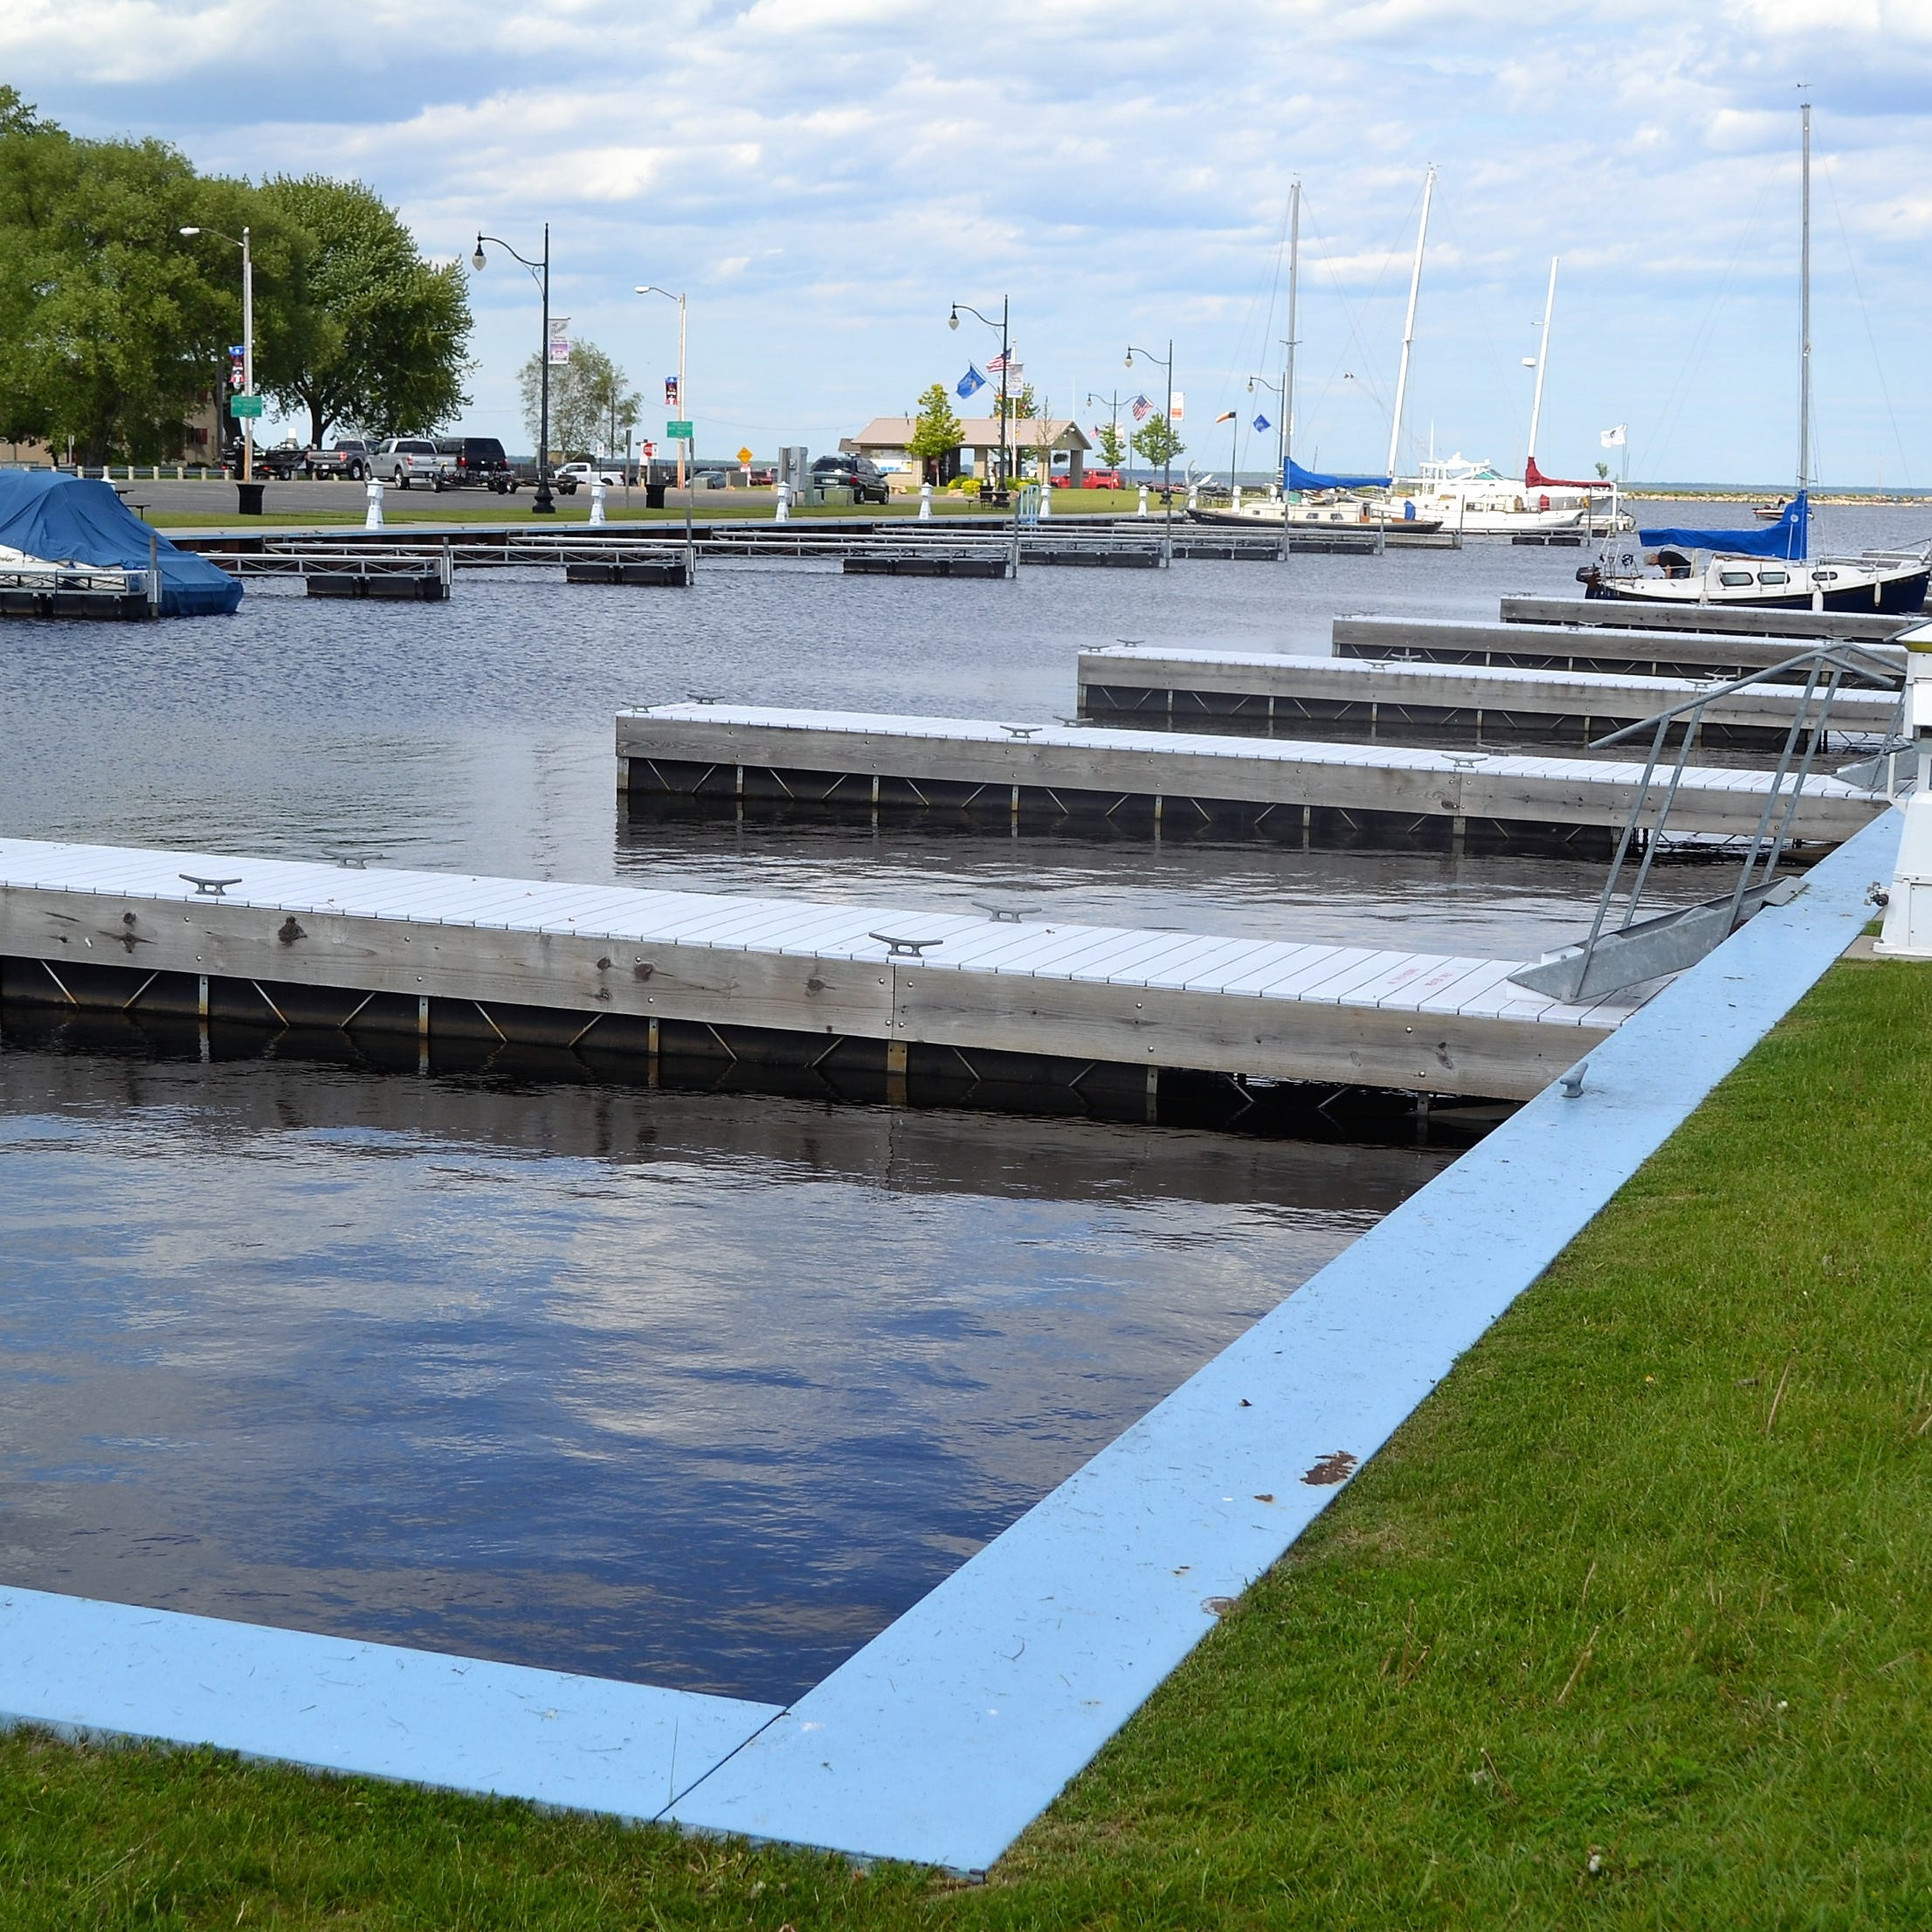 Committee approves fees increases at Oconto city pool, harbor